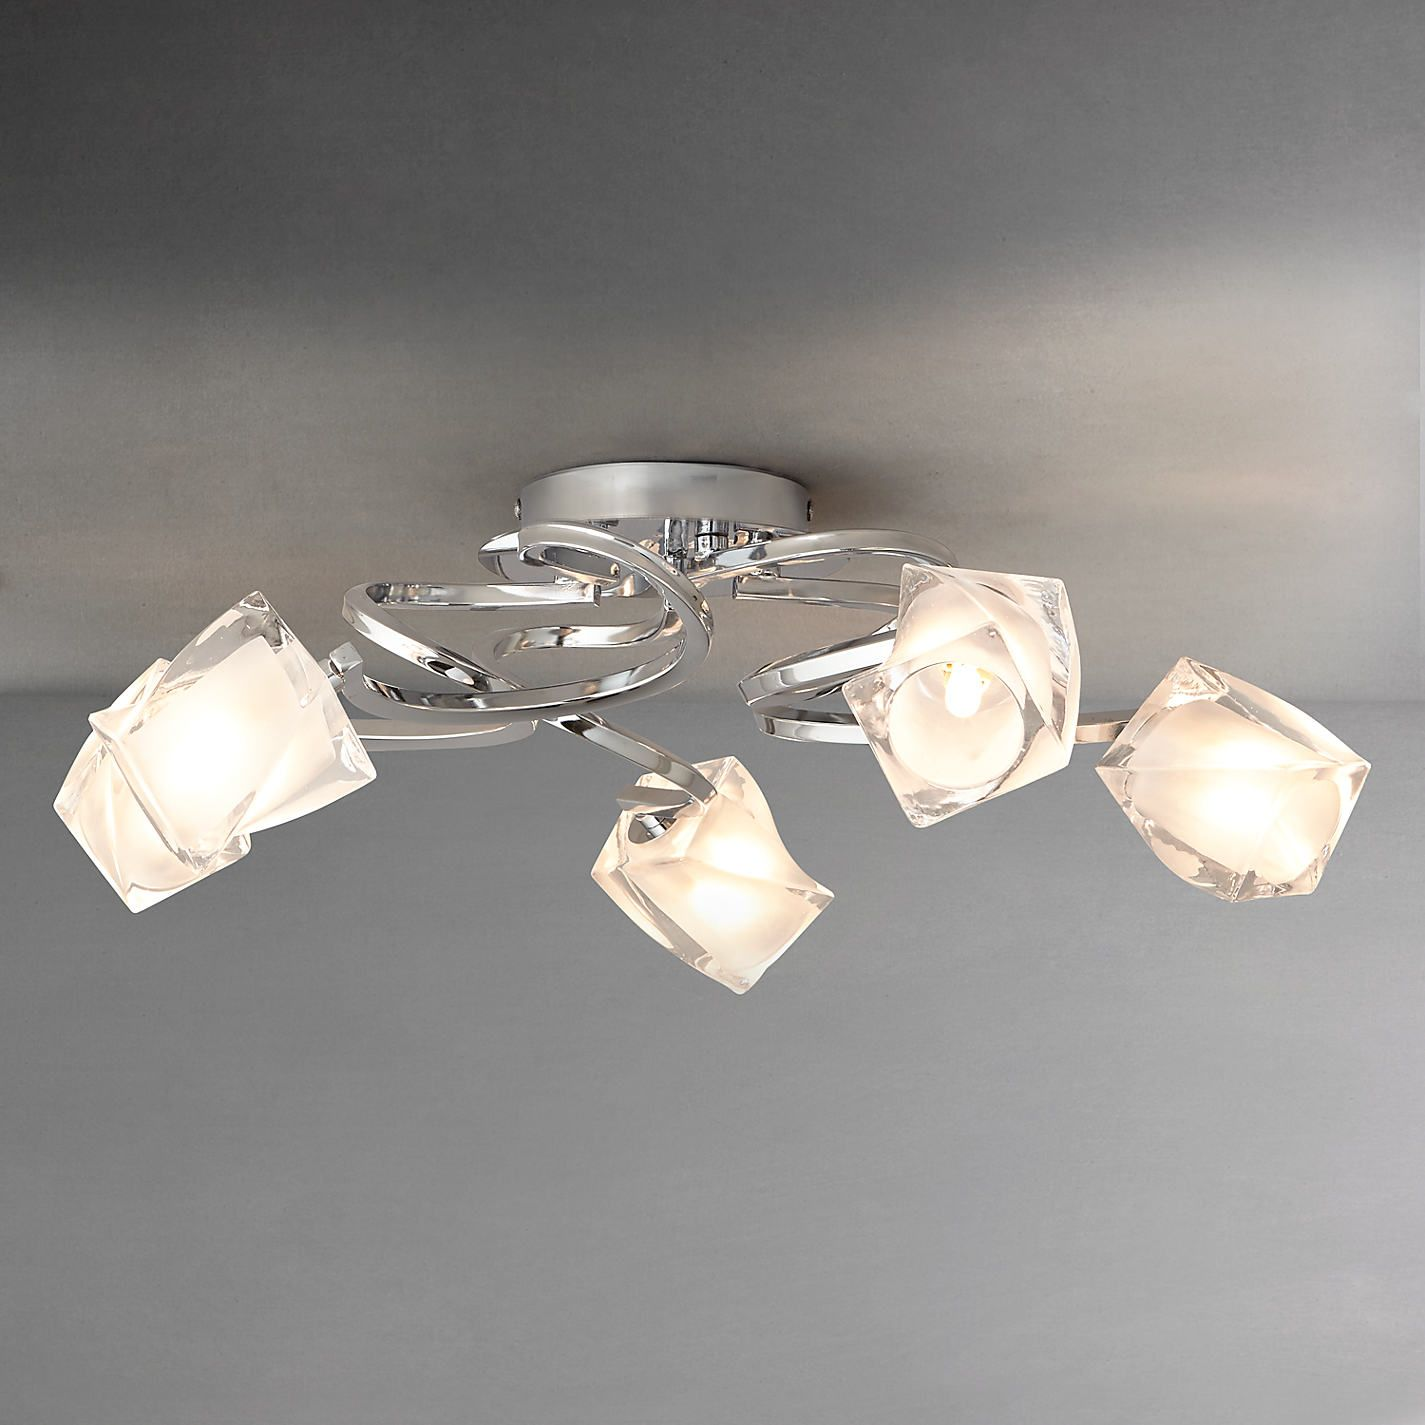 Buy John Lewis Nembus Semi Flush Ceiling Light Chrome 5 Arm From Our Lighting Range At